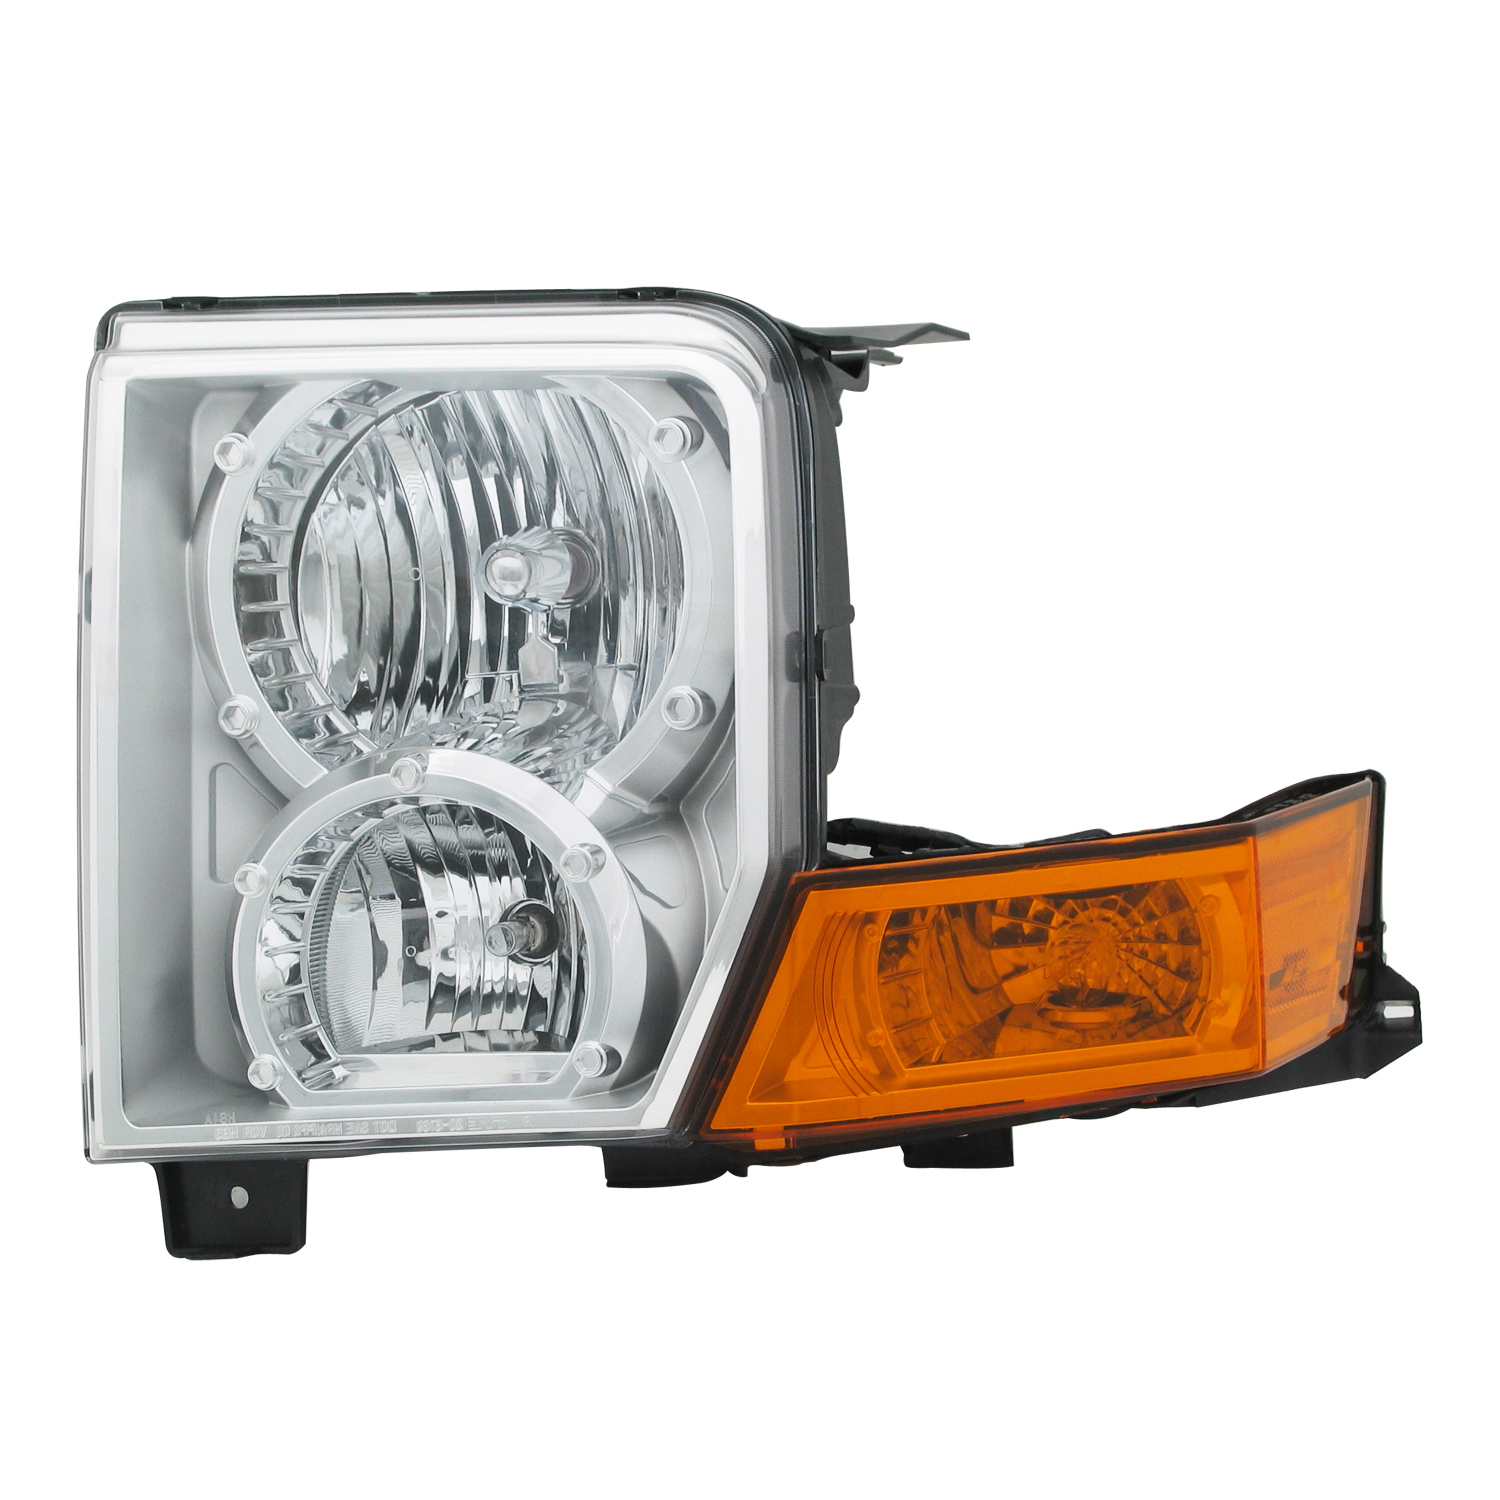 2006-2010 Jeep Commander Aftermarket Passenger Side Front Head Lamp Assembly 55396536AI by Premium Replacement